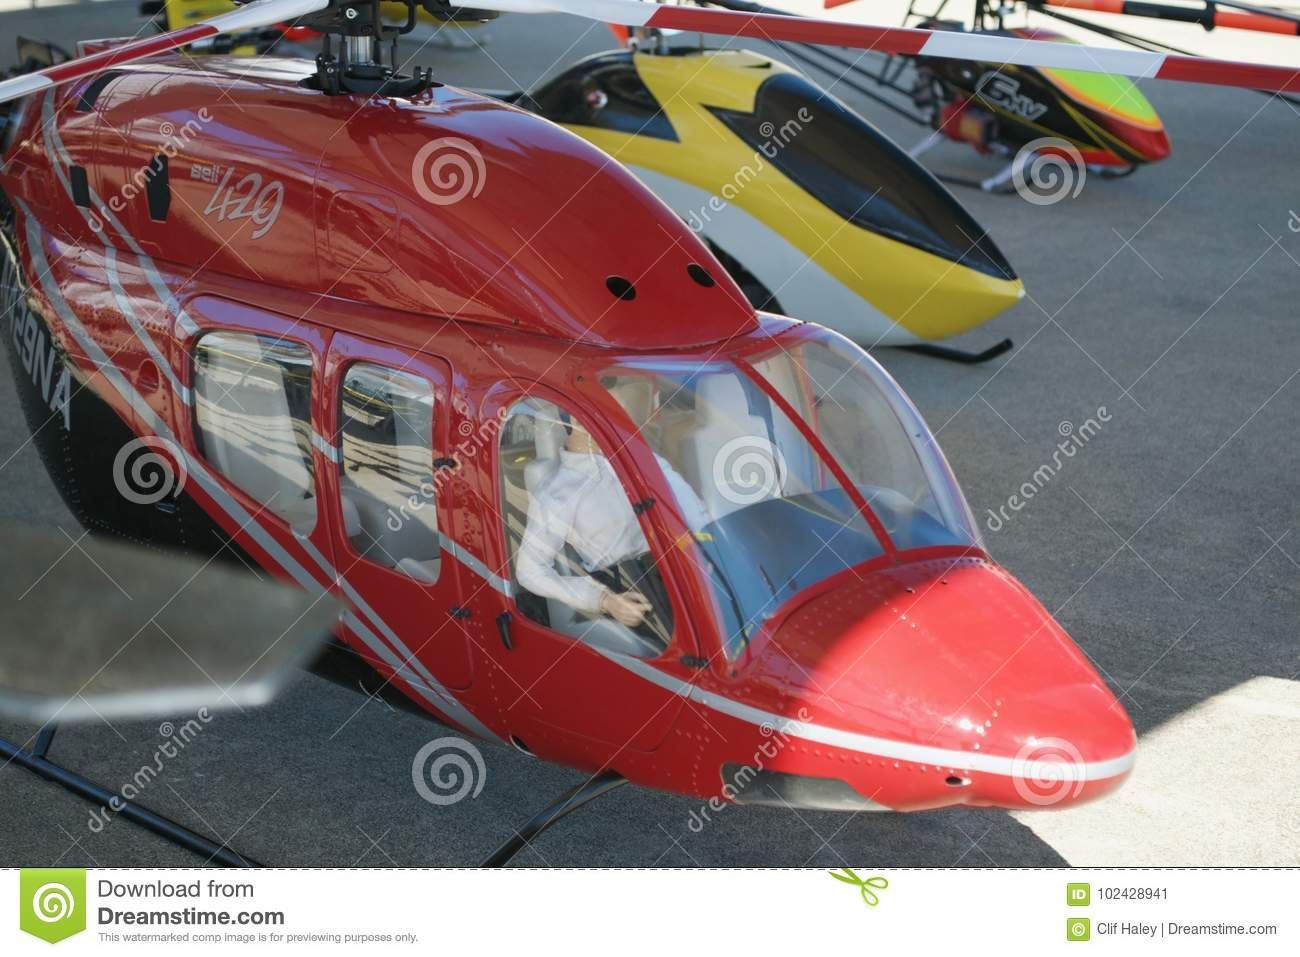 Large Remote Control Helicopters At Air Show Stock Image - Image of